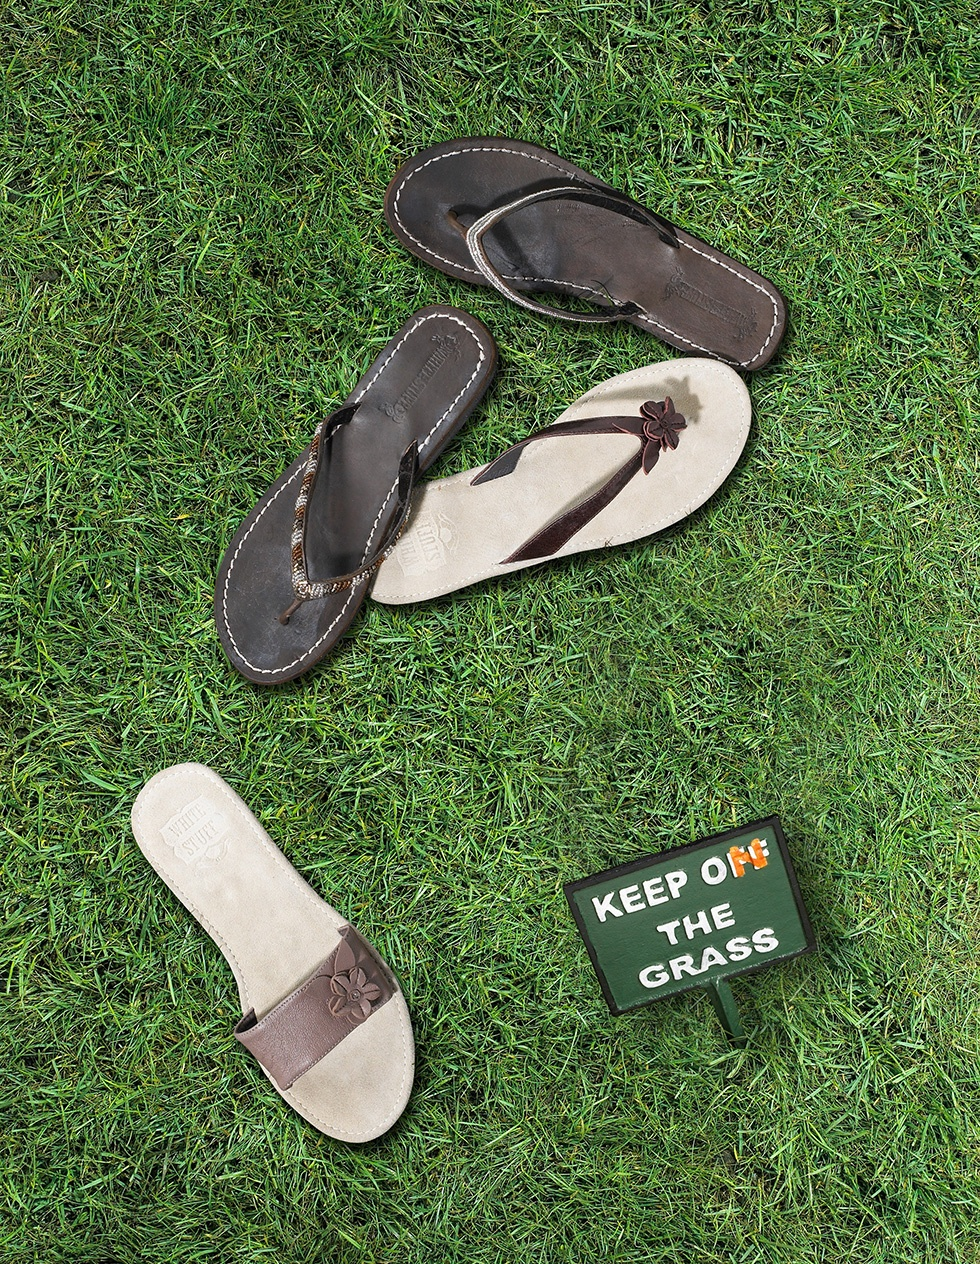 Keep on the grass 1